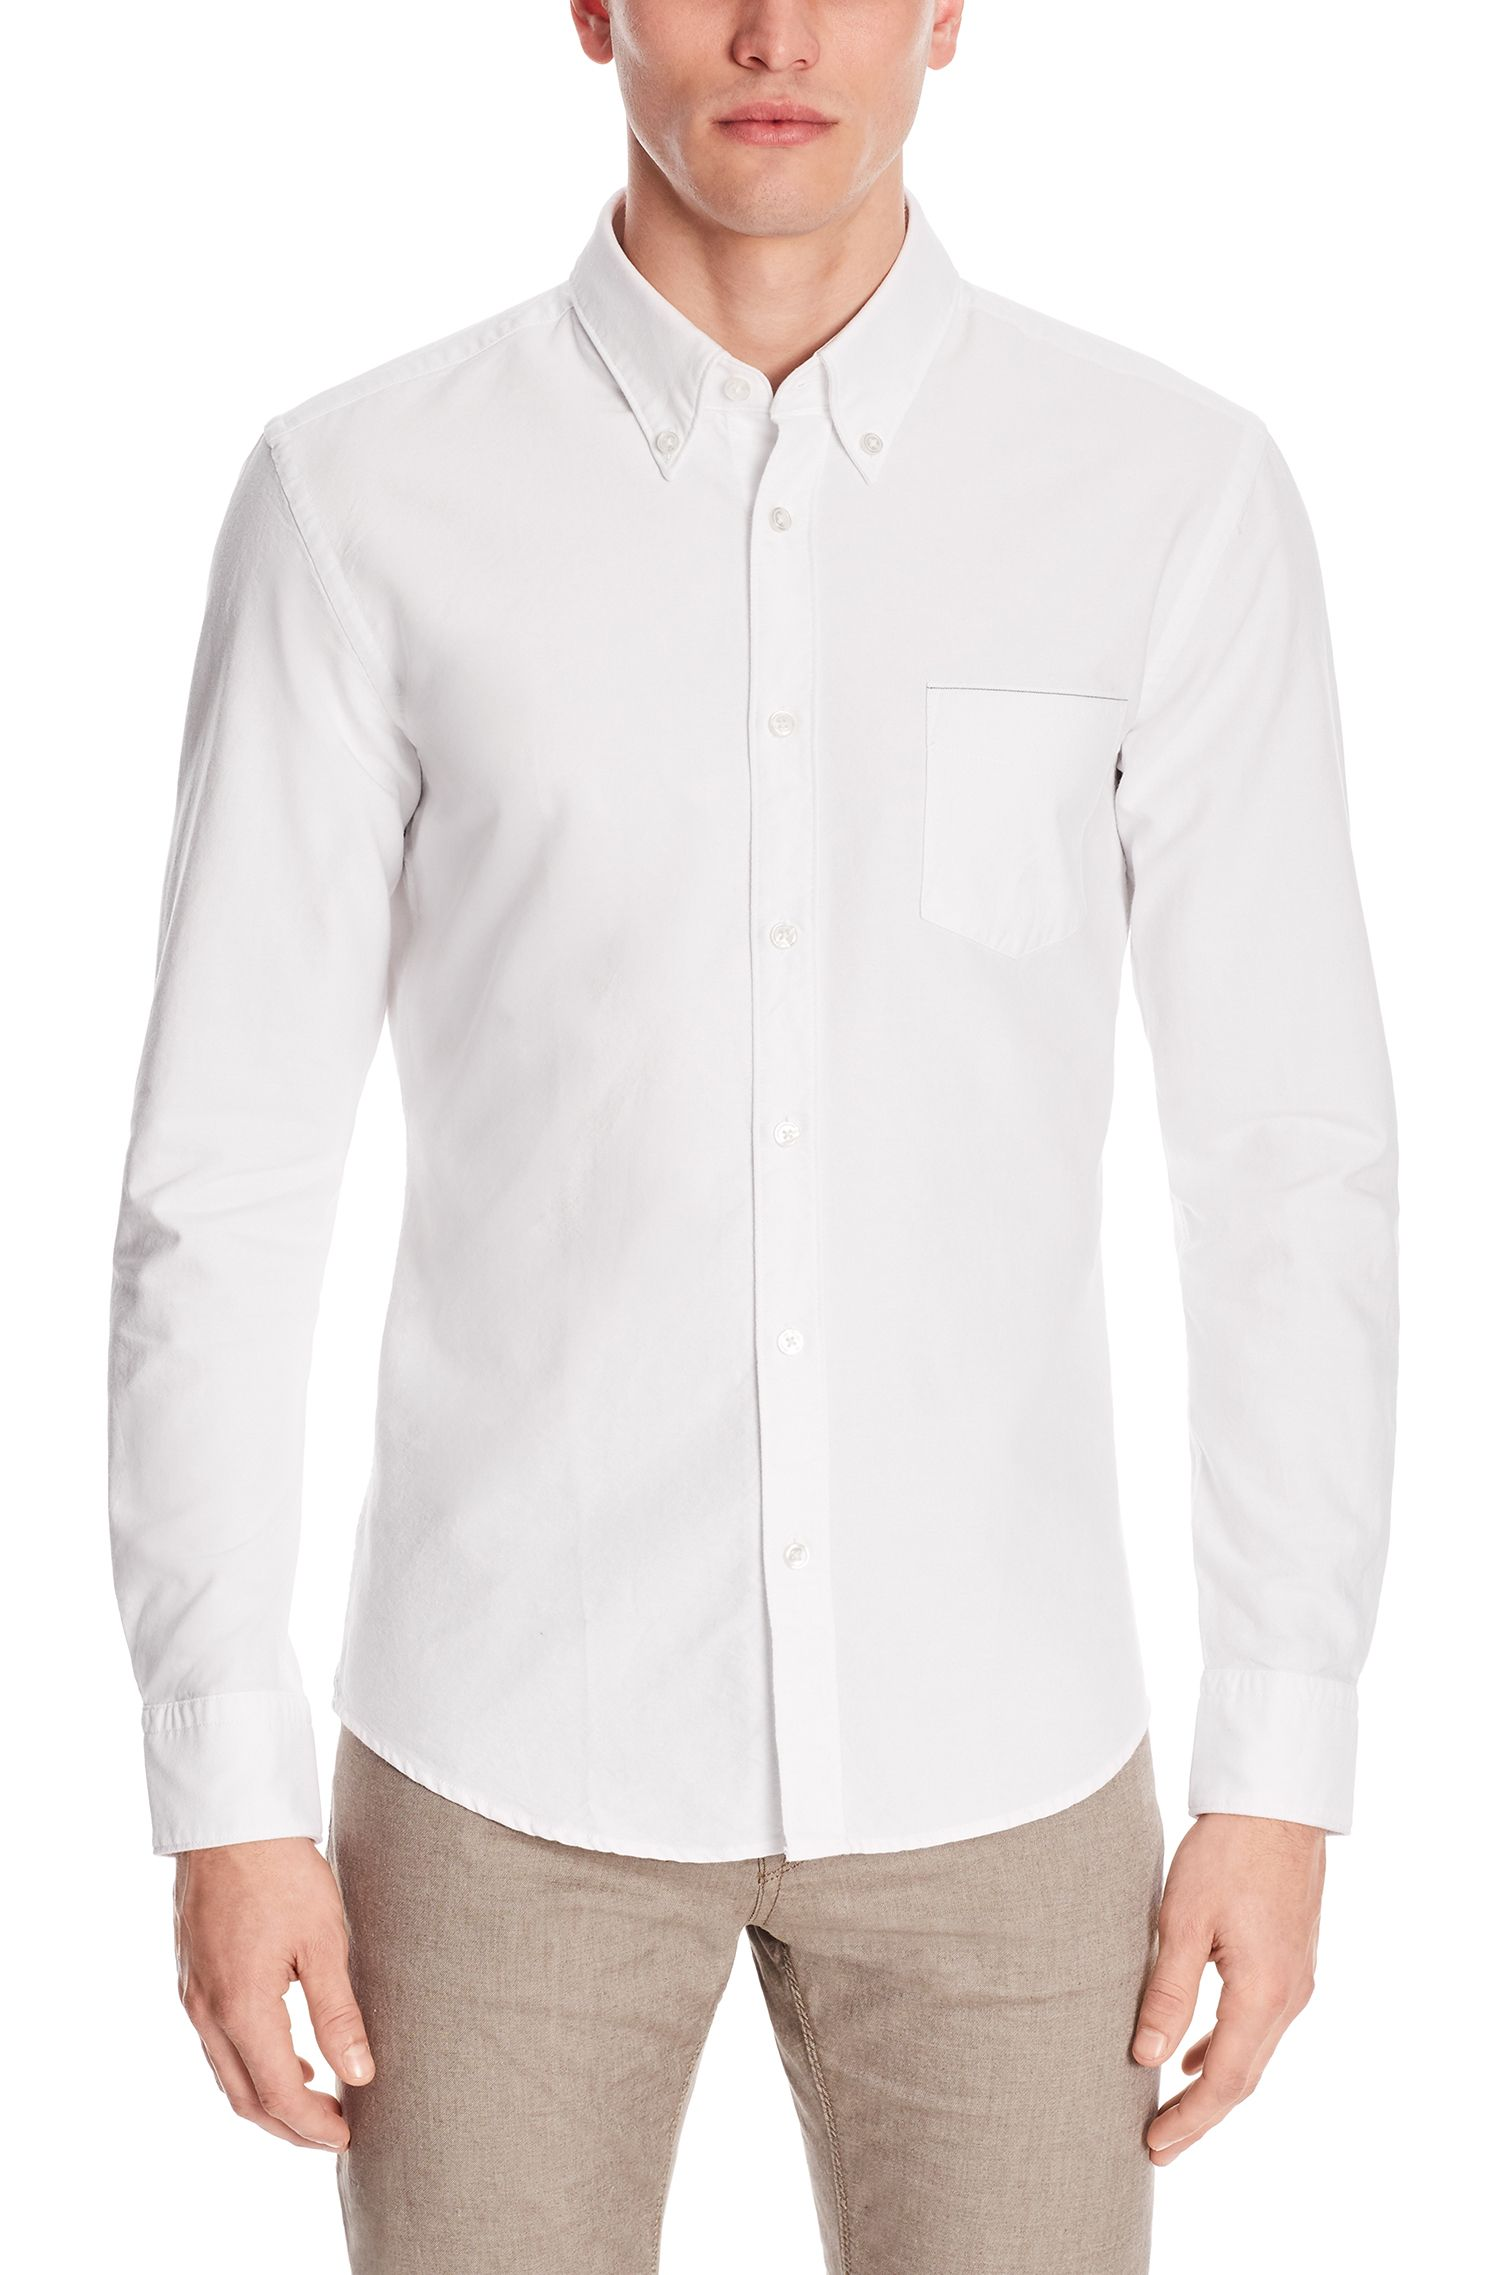 Cotton Oxford Button Down Shirt, Slim Fit | Rubens P, Natural